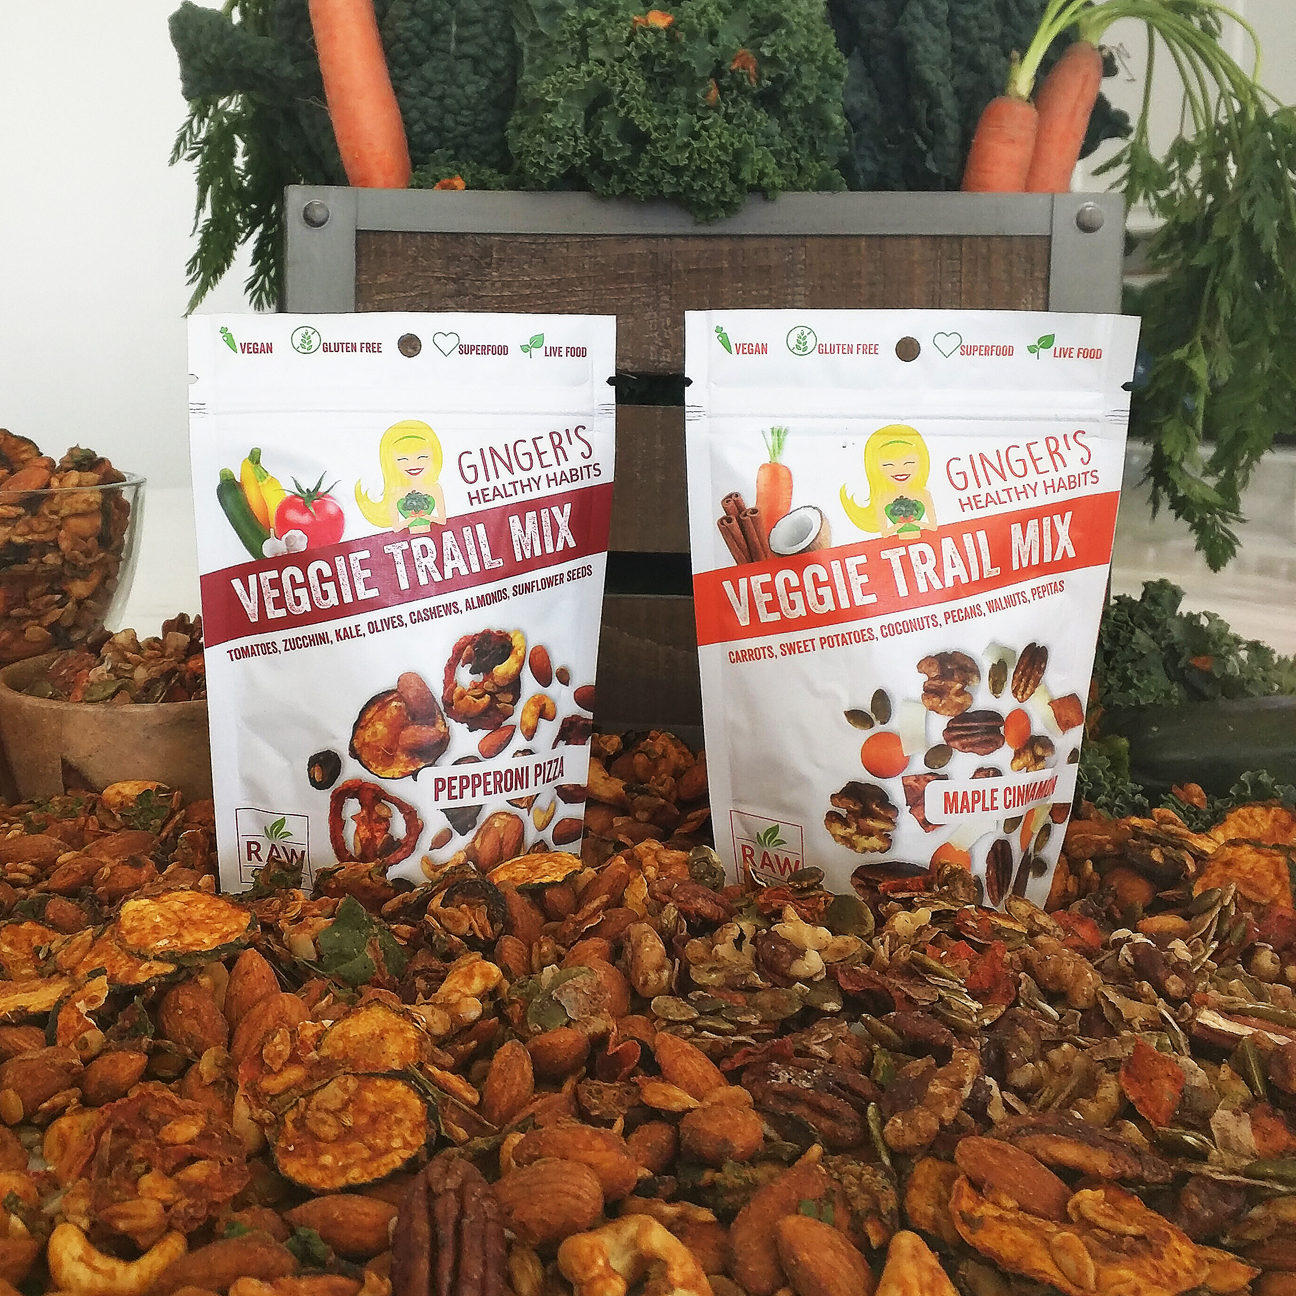 GINGER'S HEALTHY HABITS DEBUTS FIRST VEGGIE TRAIL MIX AT 2016 NATURAL PRODUCTS EXPO WEST